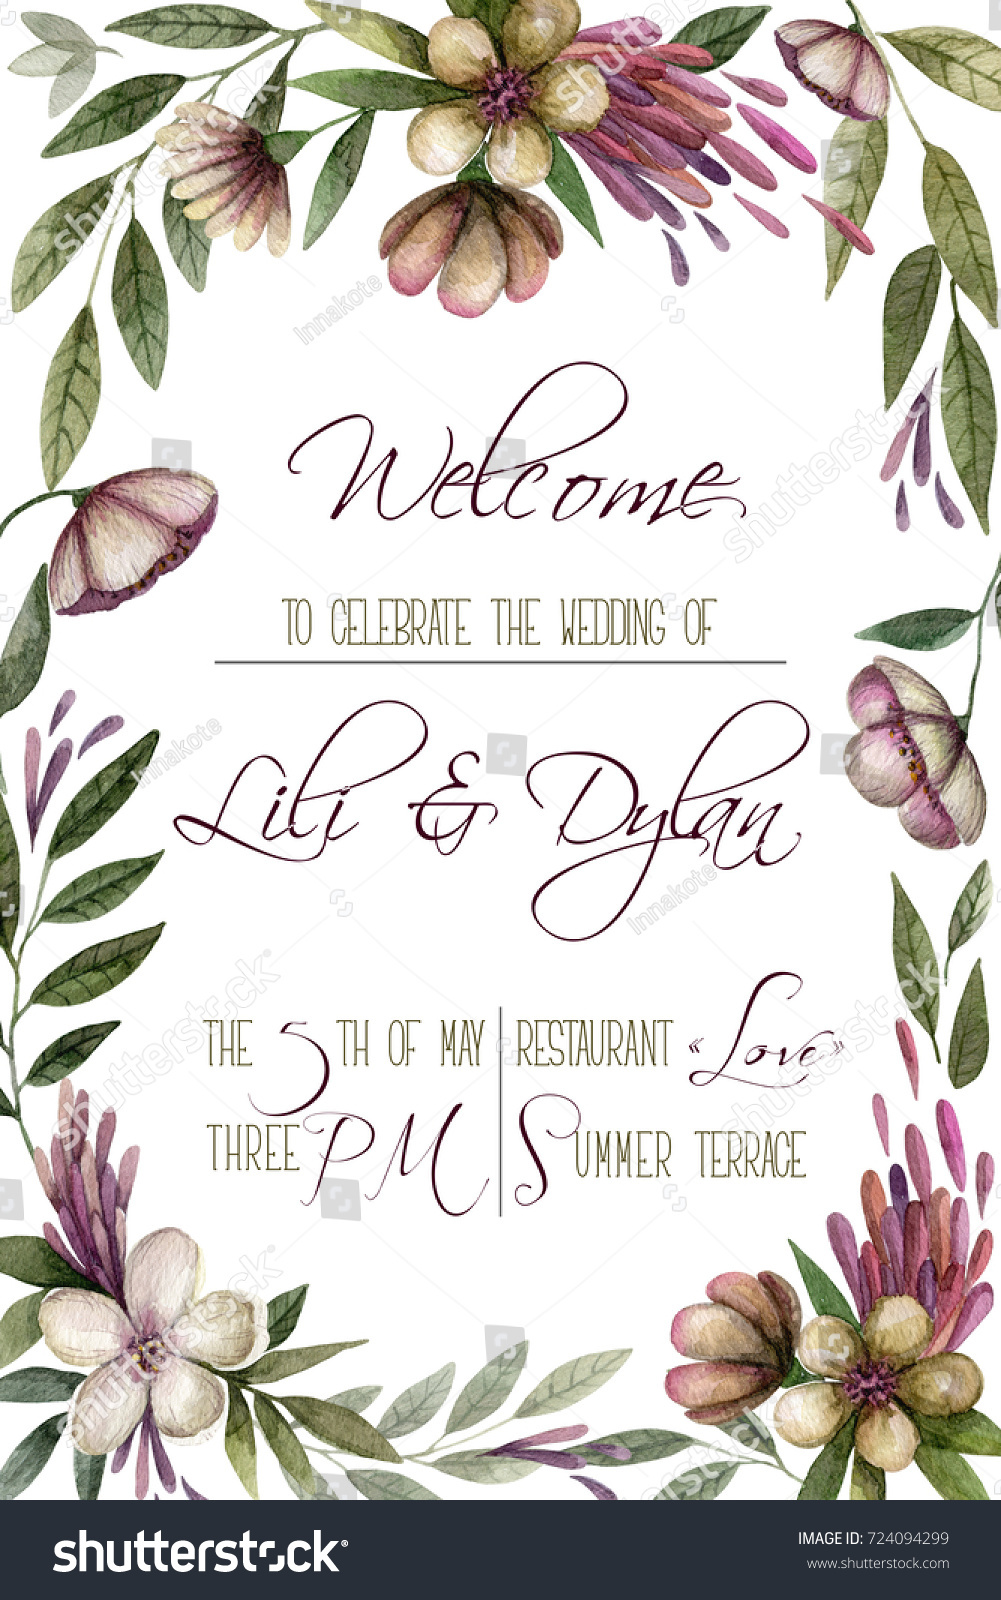 Invitation Card Watercolor Vintage Flowers Can Stock Illustration